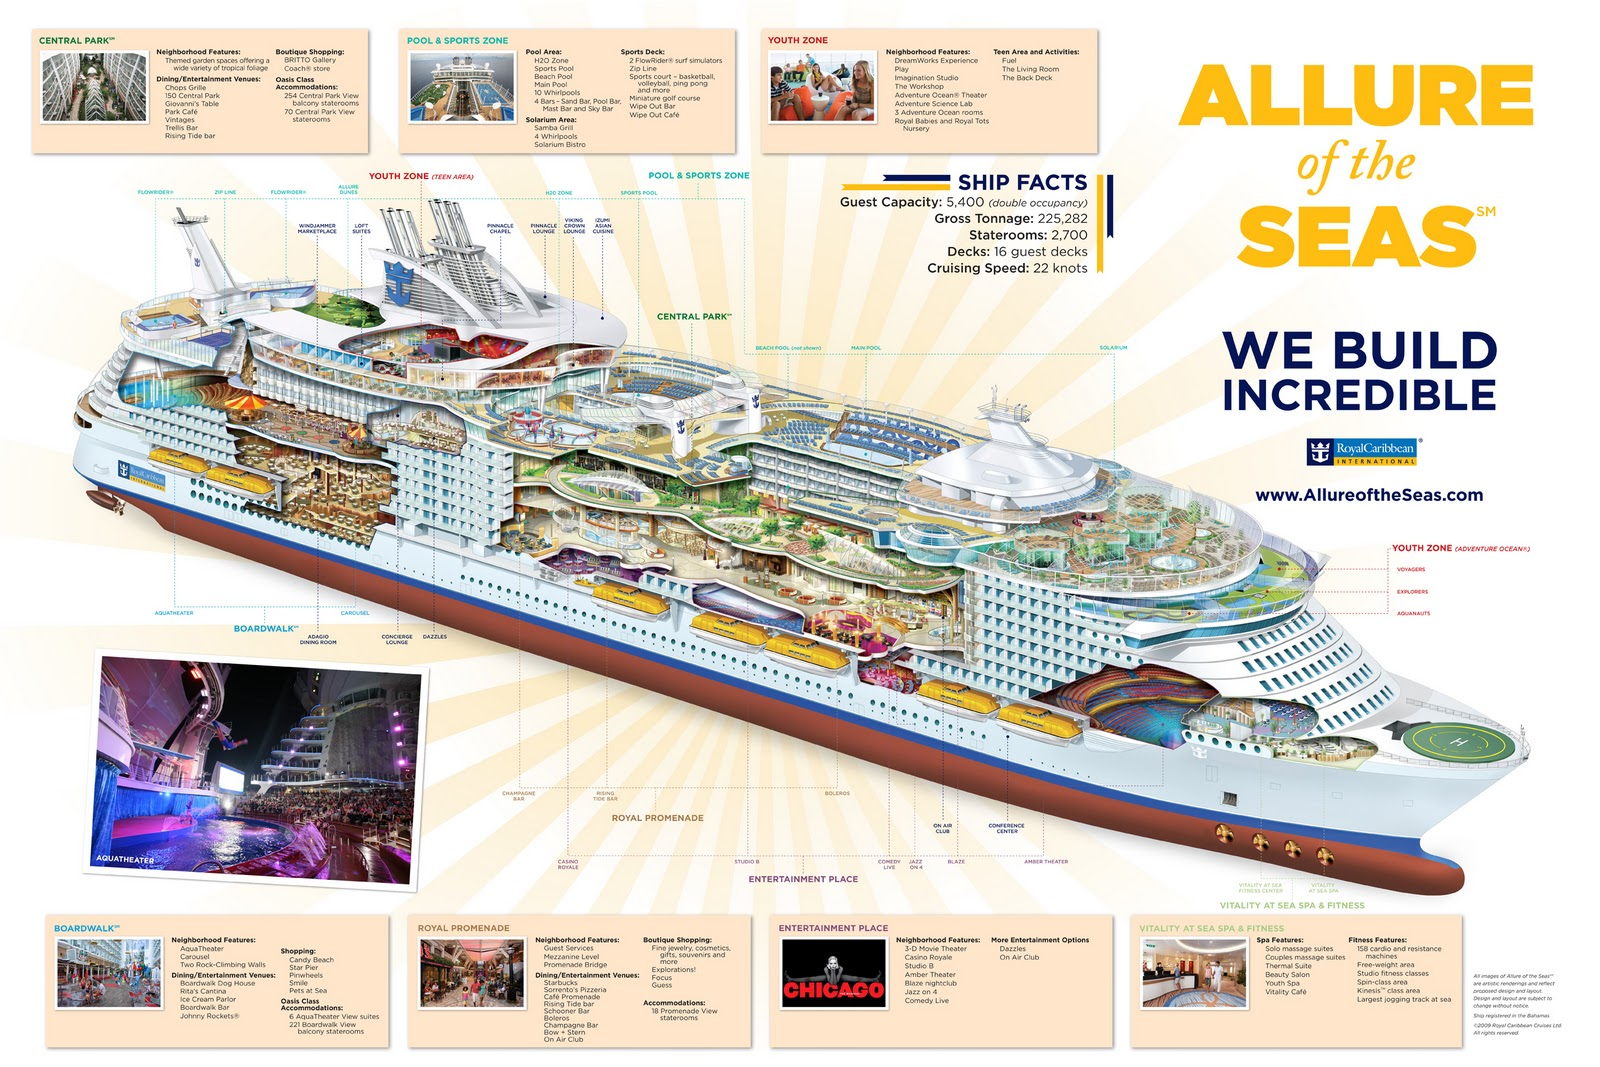 Inpark magazine royal caribbean allure of the seas cruise ship by funa international is one of the features that distinguish allure of the seas royal caribbean internationals rci new vessel and largest cruise pooptronica